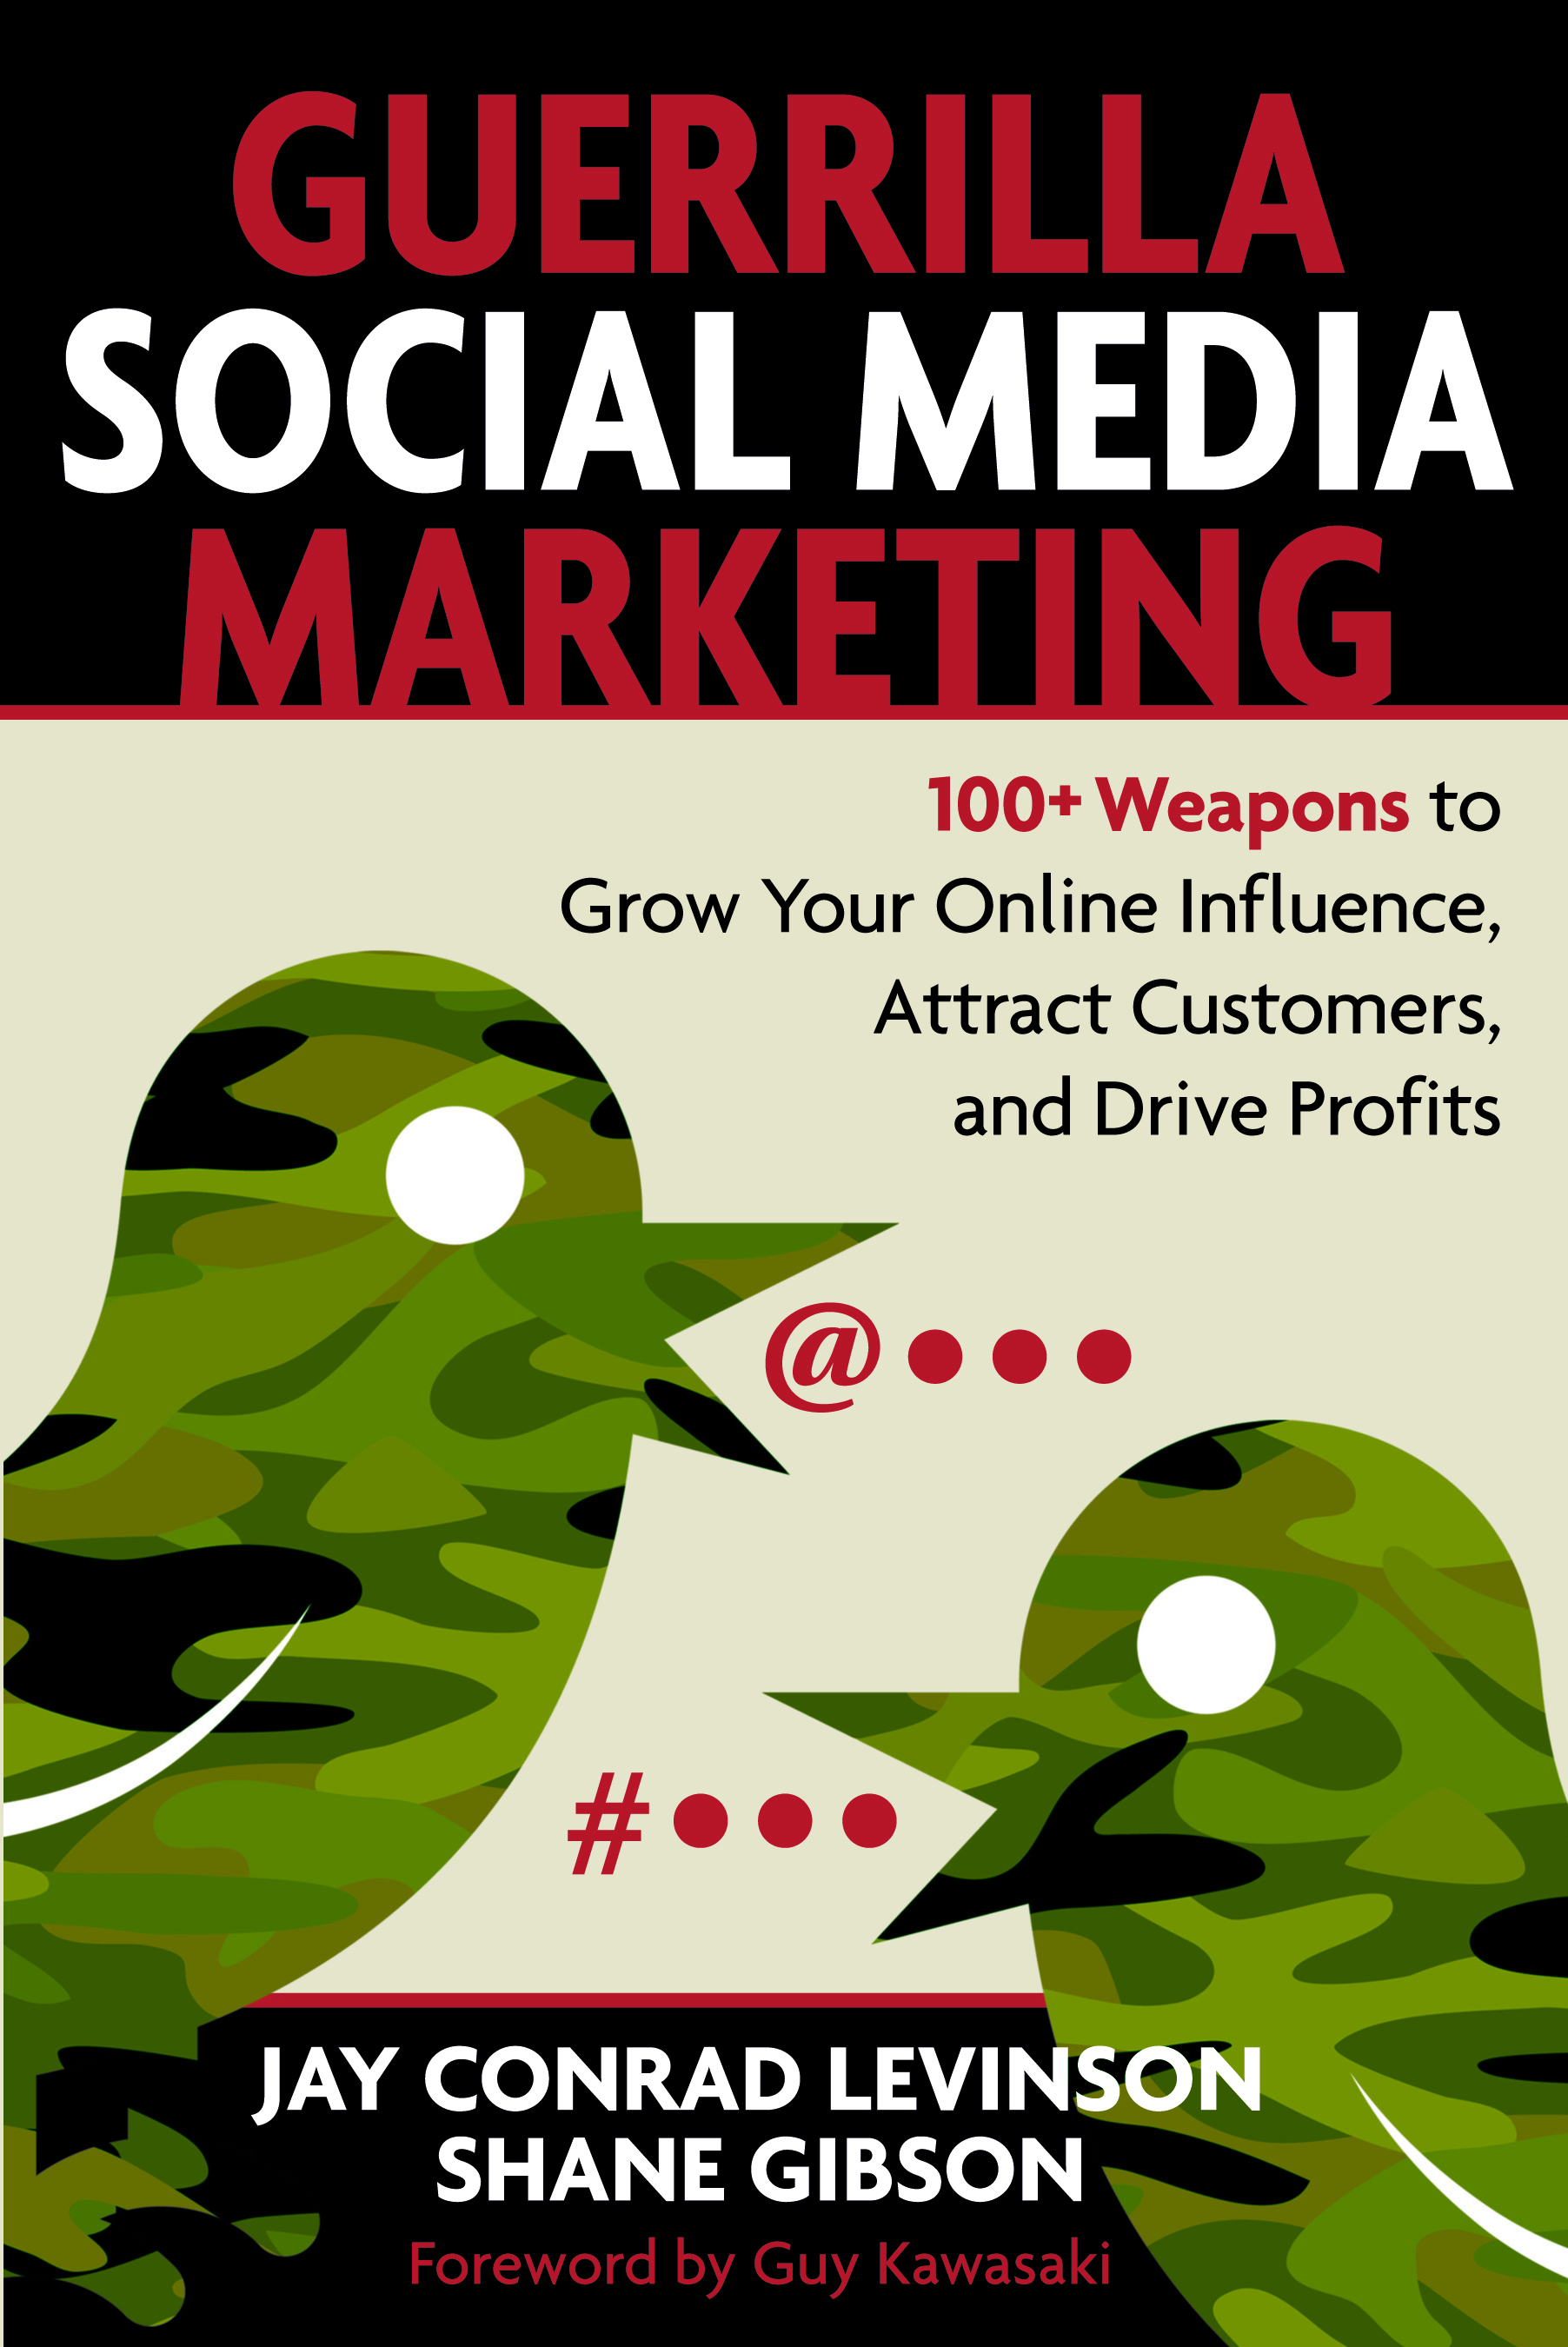 "Grow Your Online Influence--Go Guerrilla Equipping you with action plans, implementation steps and more than 100 marketing weapons, Jay Conrad Levinson, The Father of Guerrilla Marketing, and social media expert Shane Gibson teach you how to combine the timeless principles of guerrilla marketing with the latest social media applications and networks. Discarding overwhelming statistics, buzzwords and acronyms, Levinson and Gibson provide a step-by-step social media attack plan. Following their take-no-prisoners guerilla approach, you'll learn how to identify unconventional social media opportunities, engage customers, motivate action, and capture profits away from your competitors. Includes: * 19 secrets every guerrilla social media marketer needs to know * The Guerrilla Social Media Toolkit * The Seven-Sentence Social Media Attack Plan * 22-point social site and blog checklist * 20 types of ROI * Free guerrilla intelligence tools * Future social media weapons that are worth knowing about * And more! This is THE social media guerrilla's go-to guide--learn how to employ a social media plan that earns attention--and profits! About the Author Jay Conrad Levinson is the author of the best-selling marketing series in history, ""Guerrilla Marketing."" His books have sold more than 20 million copies worldwide and have influenced marketing so much that they appear in 62 languages. Today, Guerrilla Marketing is most powerful brand in the history of marketing, listed among the 100 best business books ever written, and is a popular website at www.gmarketing.com. Shane Gibson is an international speaker, and author who has addressed over 100,000 people over the past sixteen years on stages in North America, Southern Africa and South America. He is in high demand as a keynote speaker on the topics of social media and sales performance. With his background in sales performance Shane brings a unique results focused approach to social media marketing."